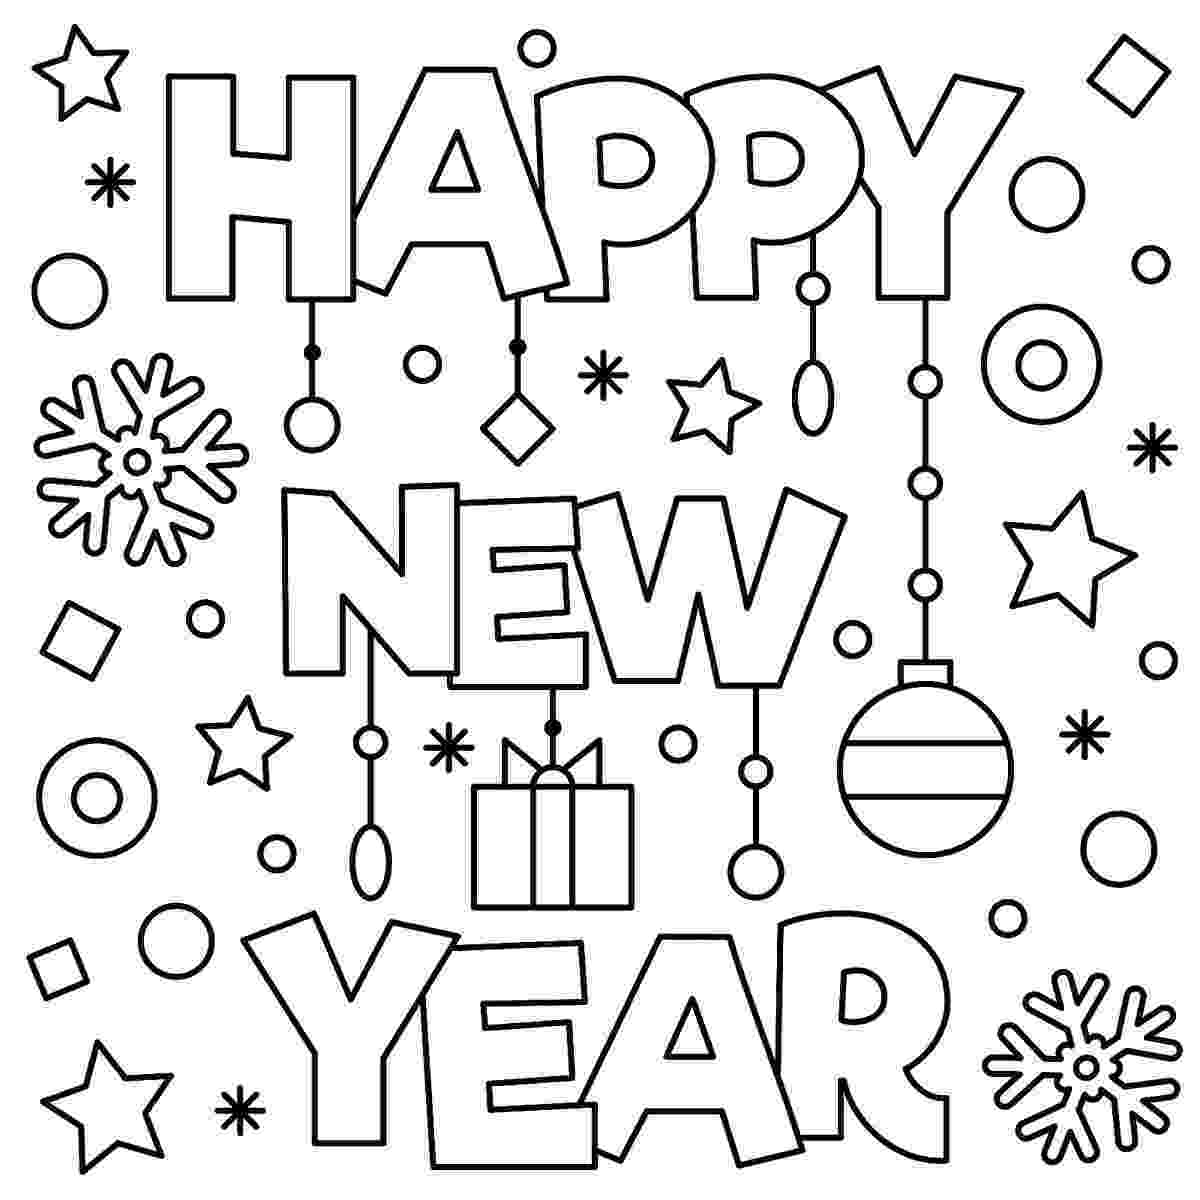 new colouring pages for adults free printable new year coloring pages new year coloring for colouring pages adults new